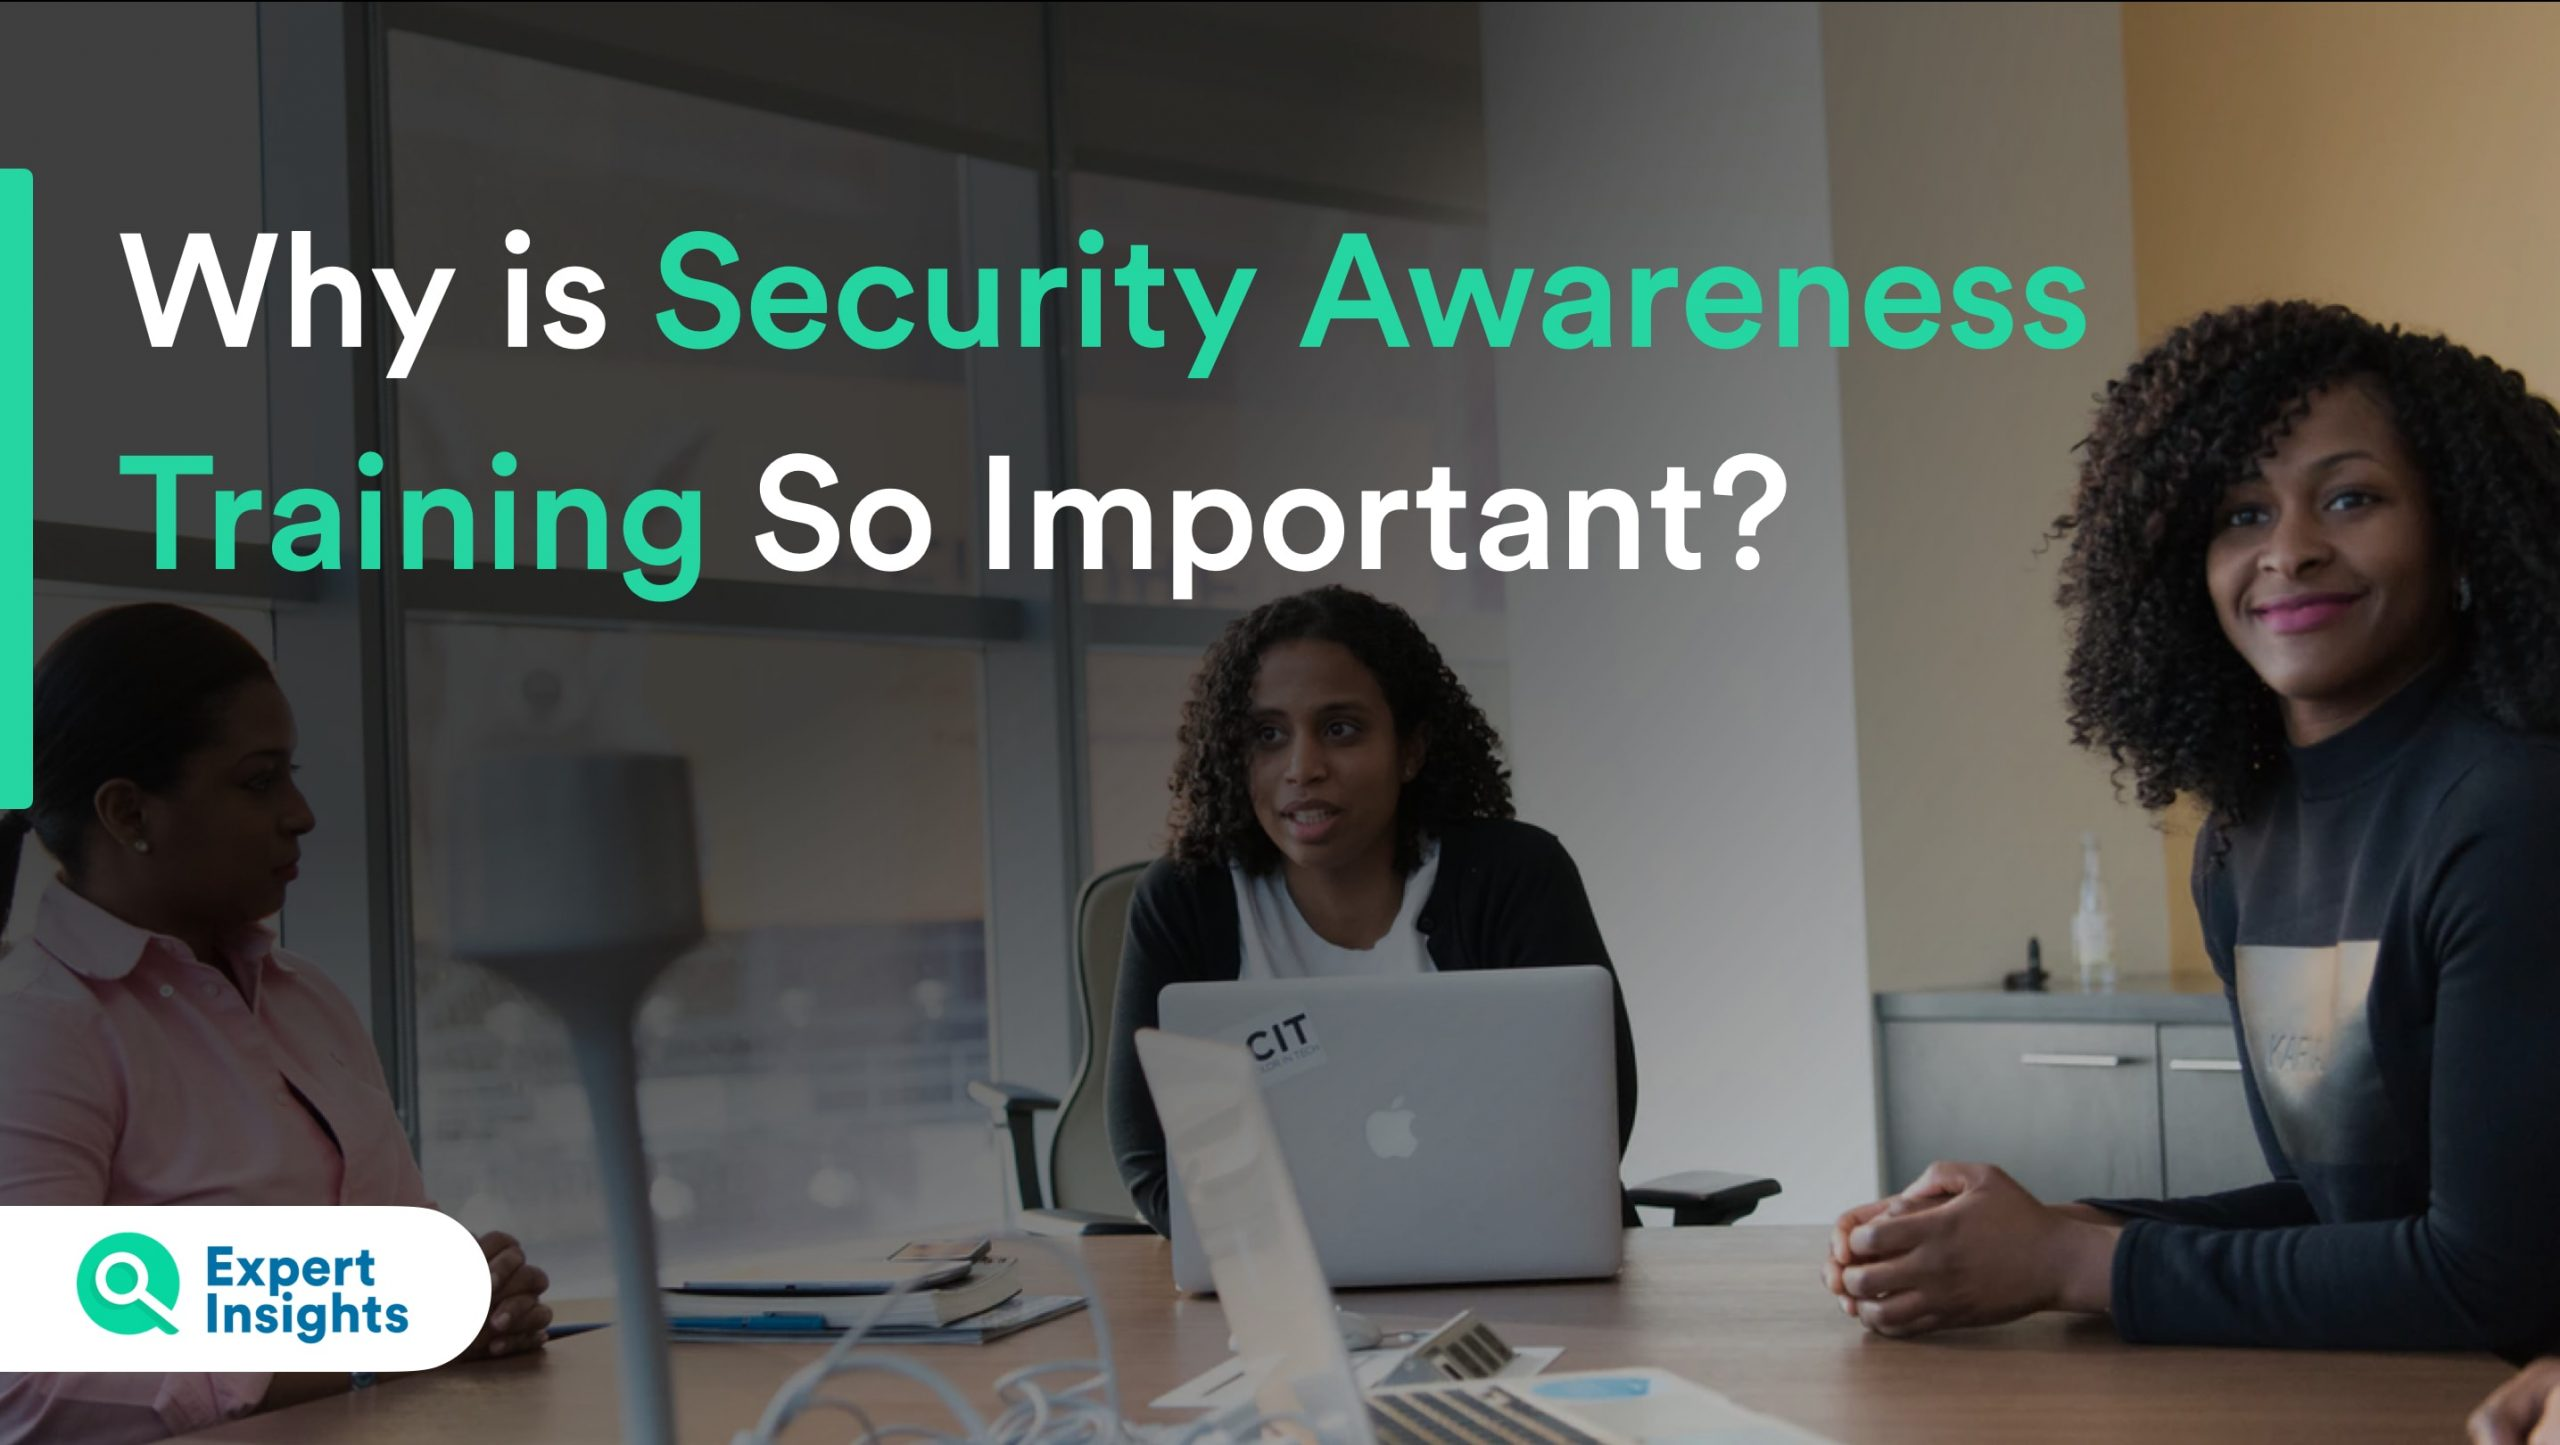 Why Is Security Awareness Training So important?